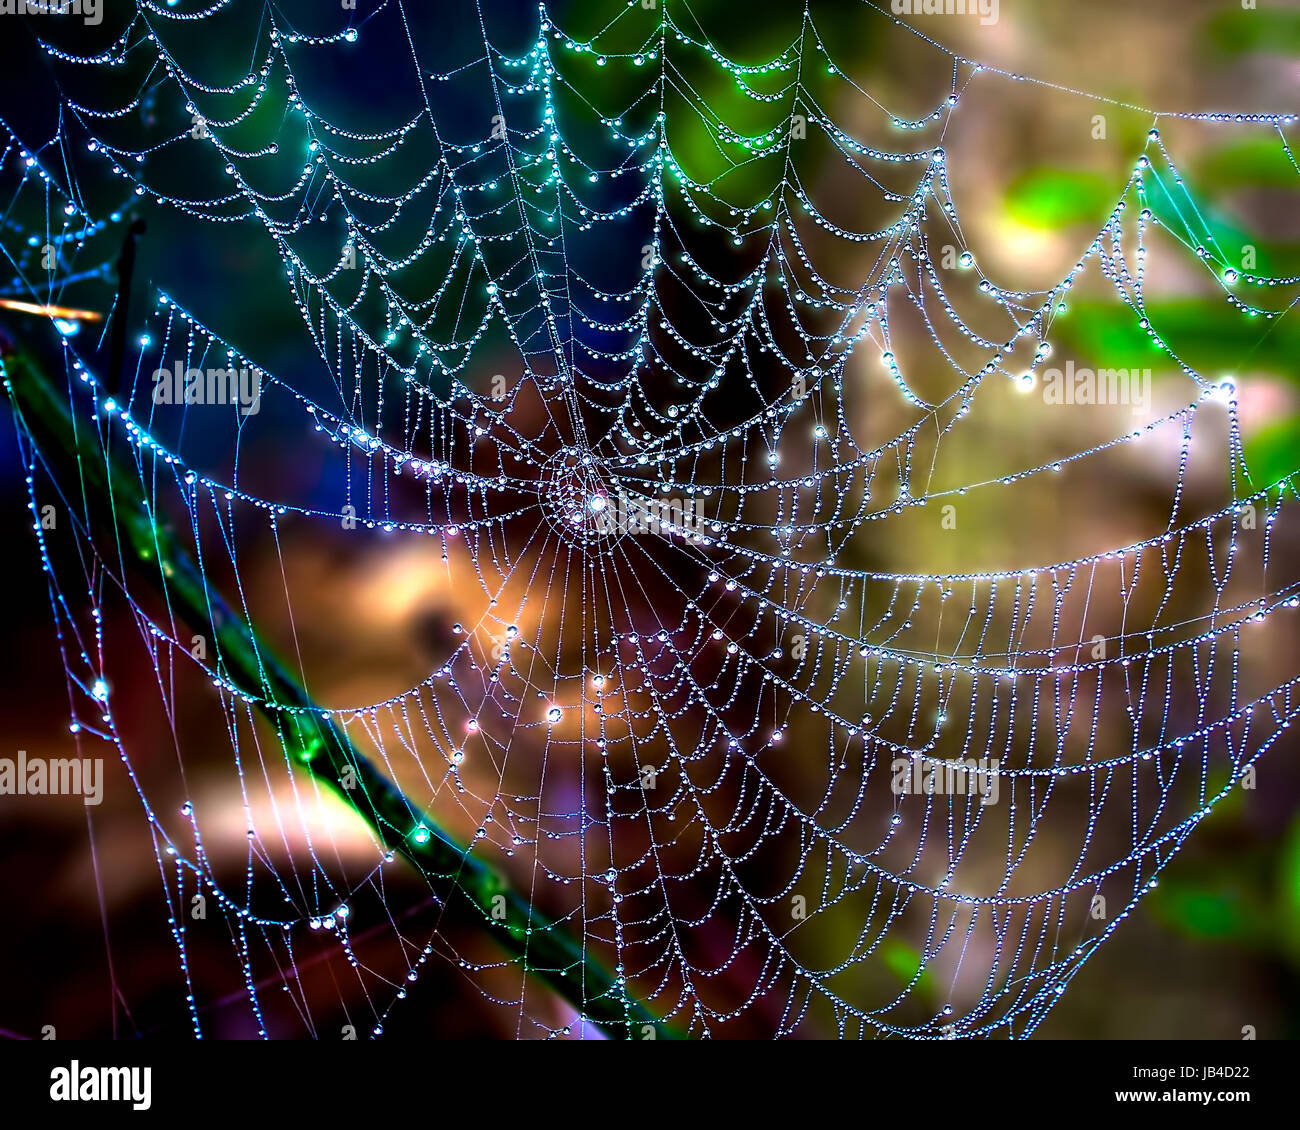 Dewdrops glisten on a beautiful and intricate spider web in the Florida Everglades. Photographed in the early morning - Stock Image